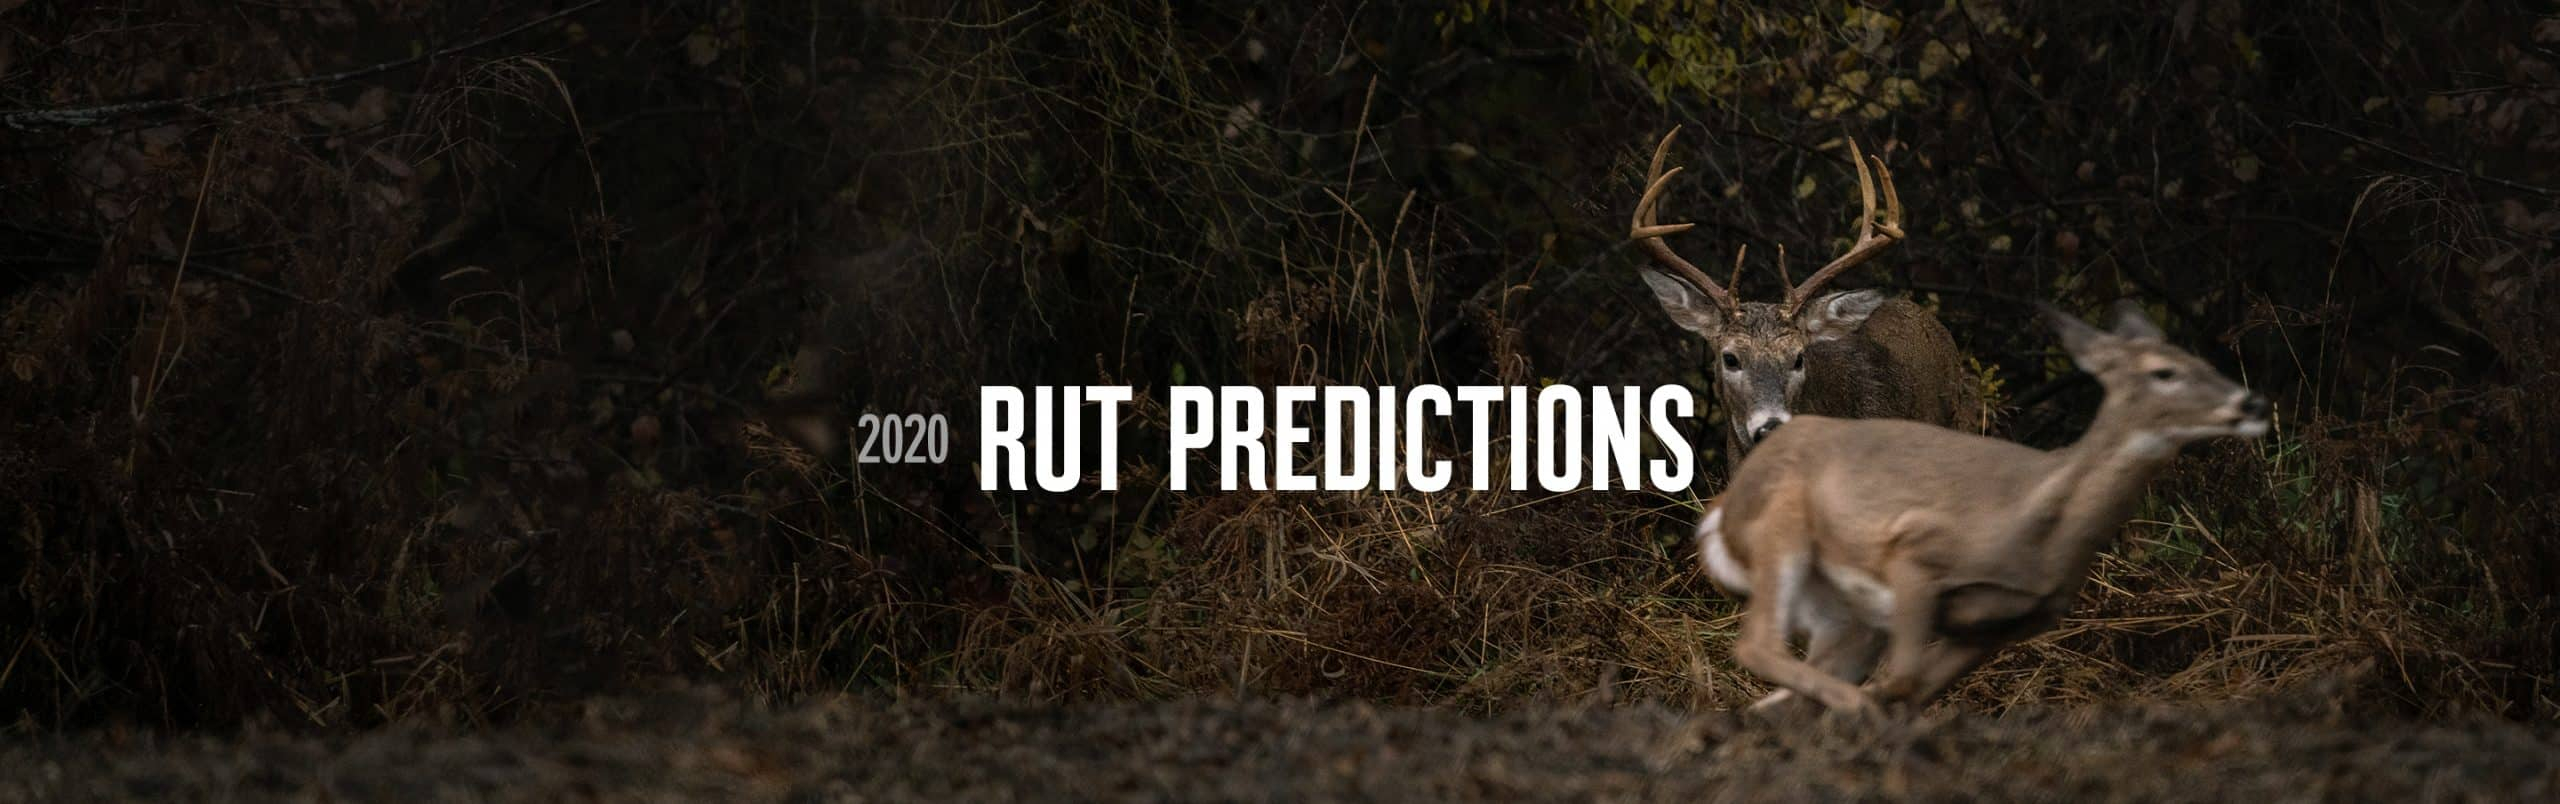 2020 Rut Predictions | Onx Maps with regard to 2021 Wisconsin Rut Predictions